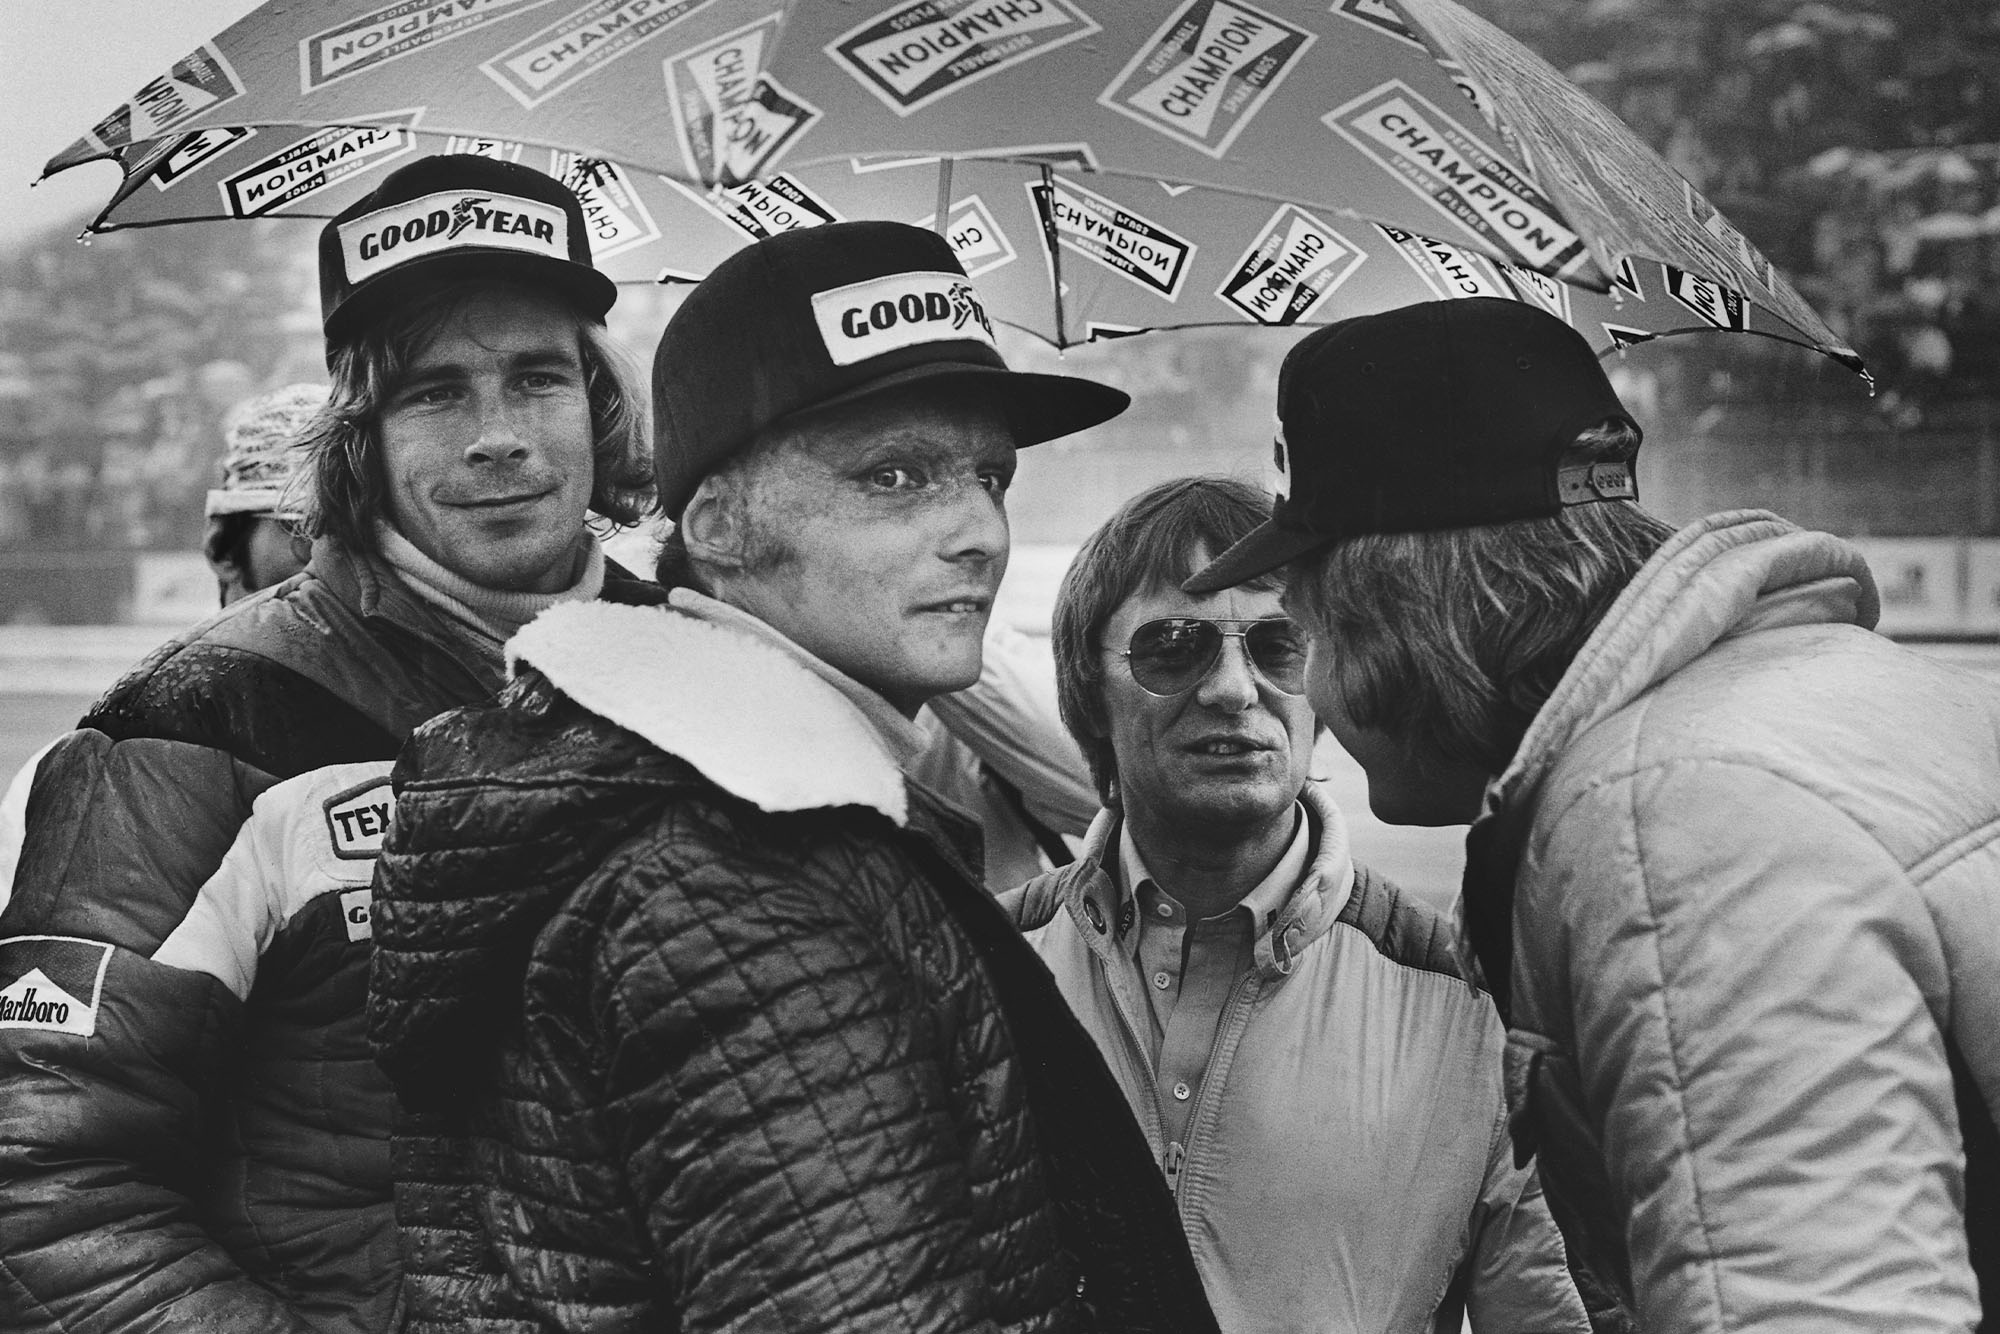 James Hunt, Niki Lauda, Bernie Ecclestone and Ronnie Peterson decide whether to start the race.